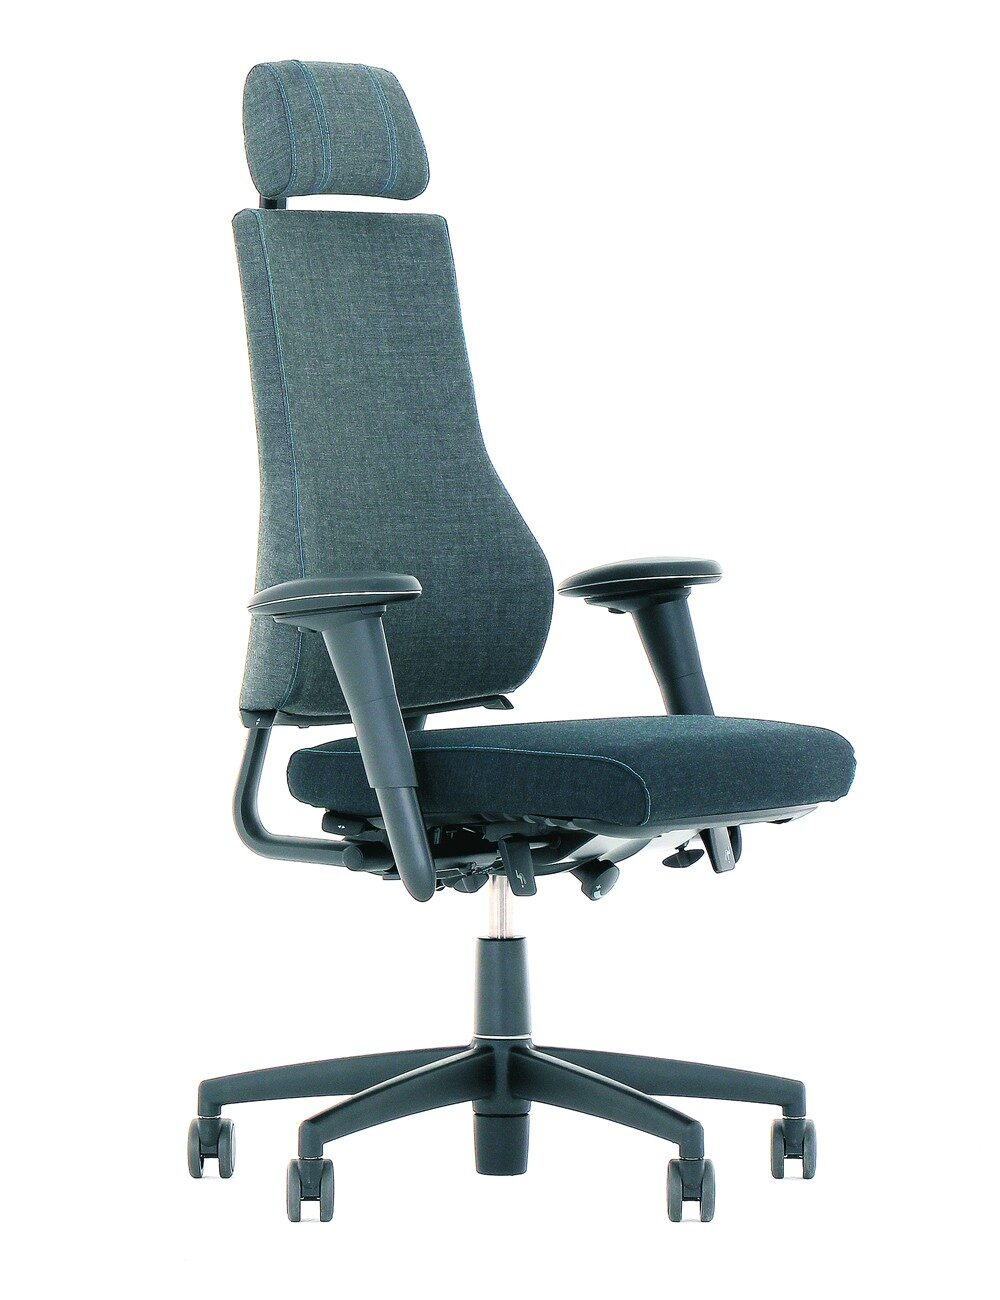 BMA Axia 2.4 Office Chair Polished Black Frame Head Rest